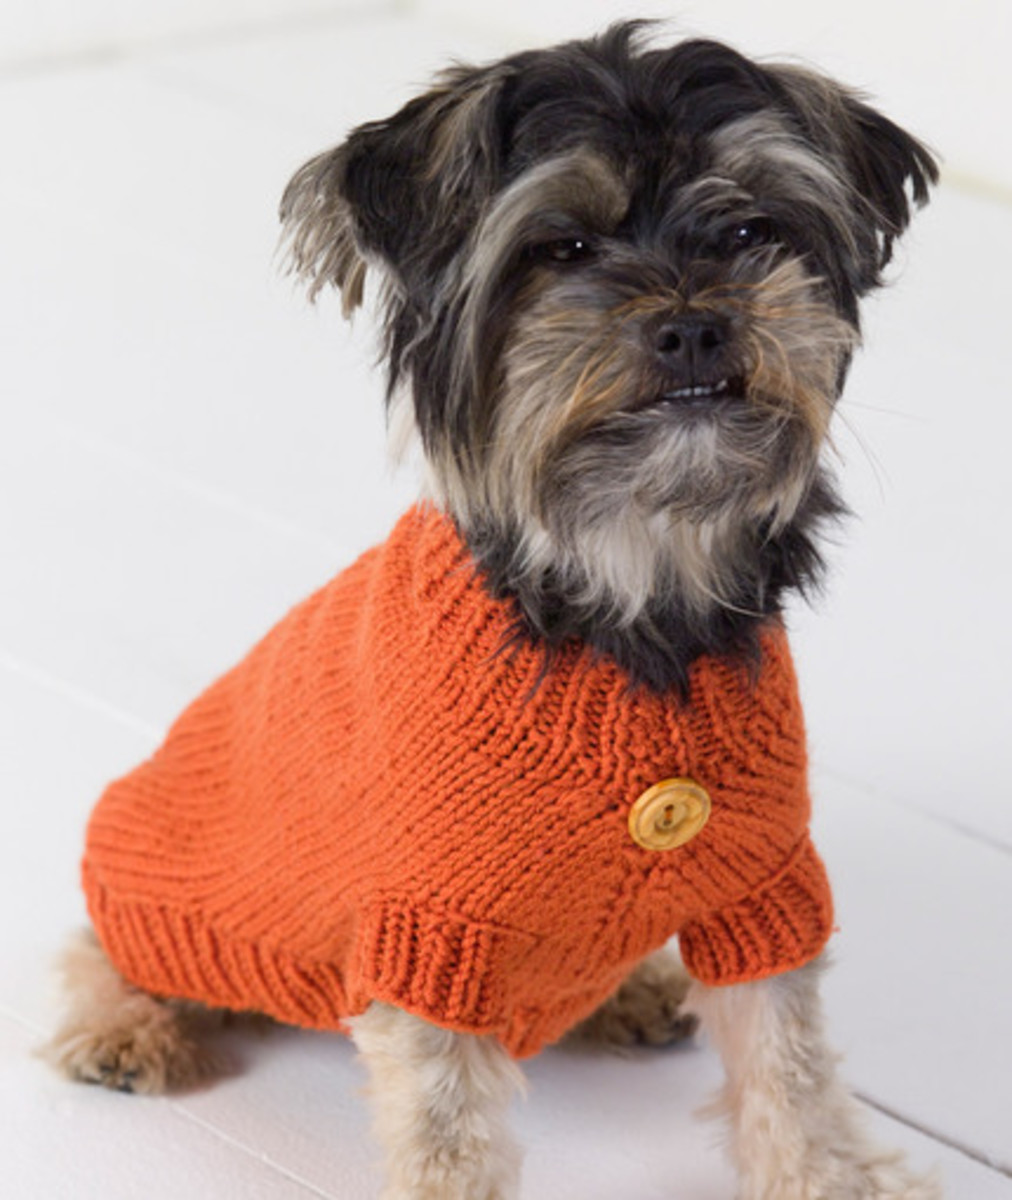 Make your own dog sweater by following a pattern.